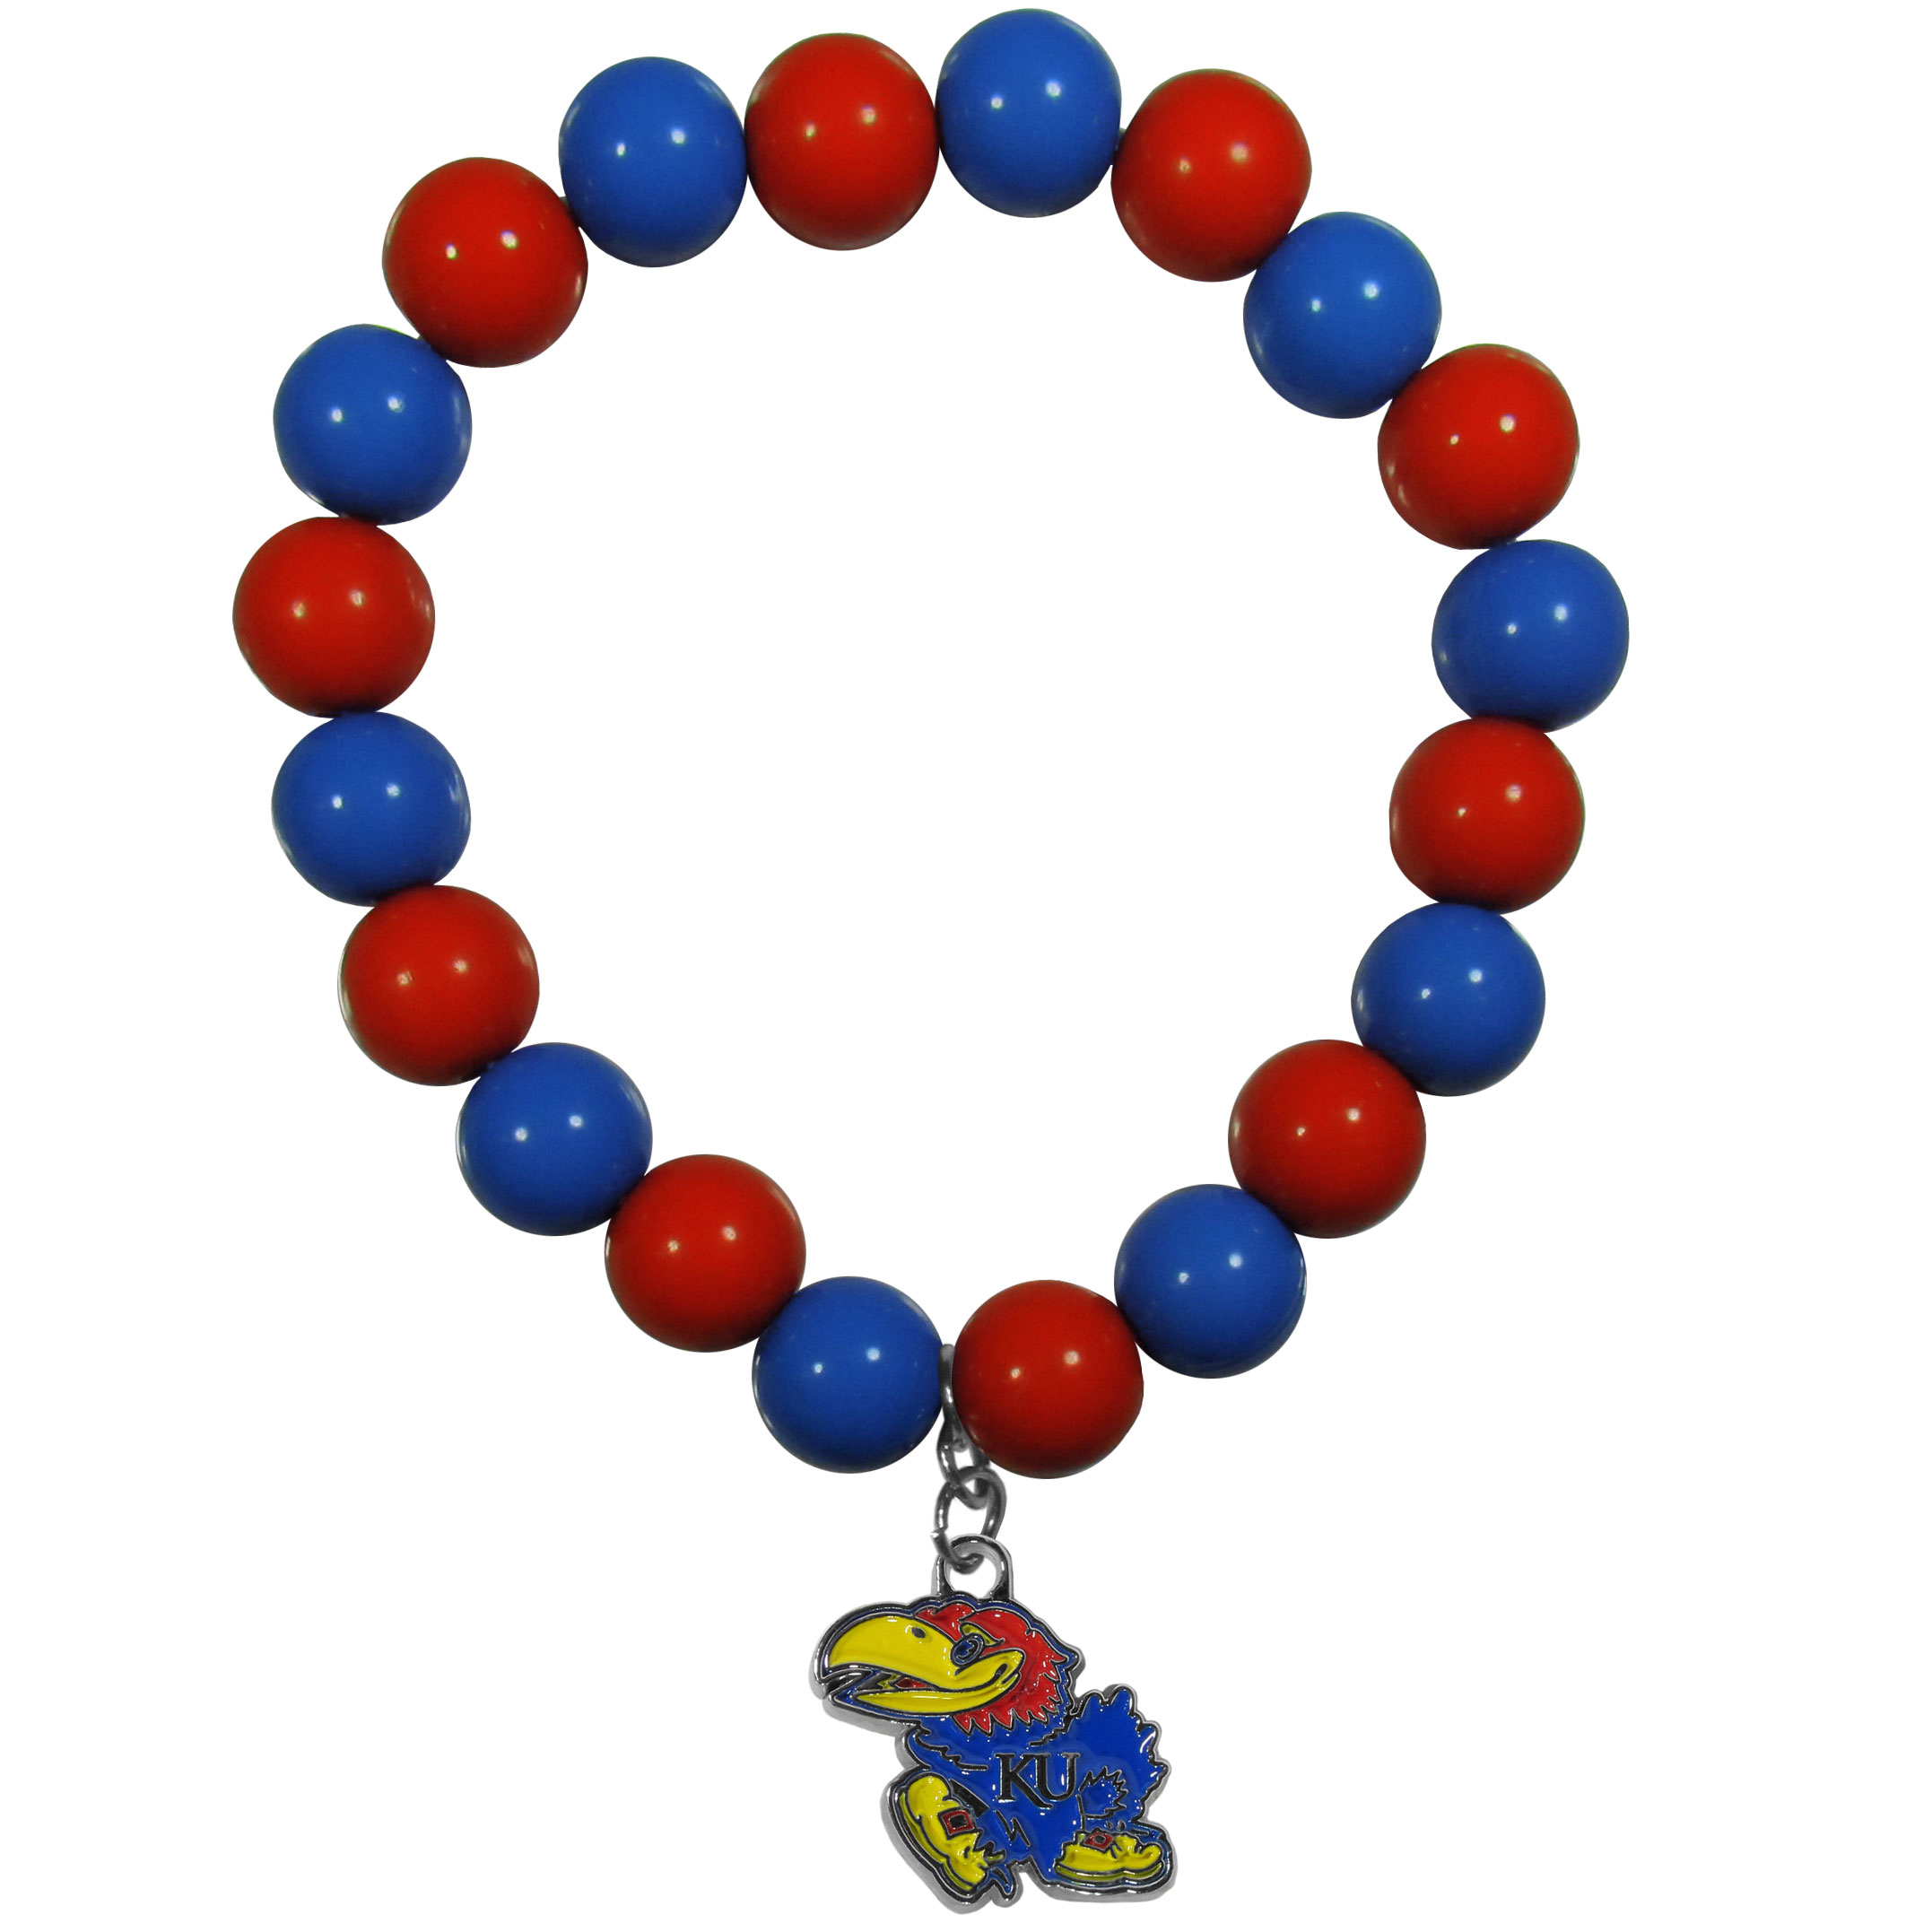 Kansas Jayhawks Fan Bead Bracelet - Flash your Kansas Jayhawks spirit with this bright stretch bracelet. This new bracelet features multicolored team beads on stretch cord with a nickel-free enameled chrome team charm. This bracelet adds the perfect pop of color to your game day accessories.